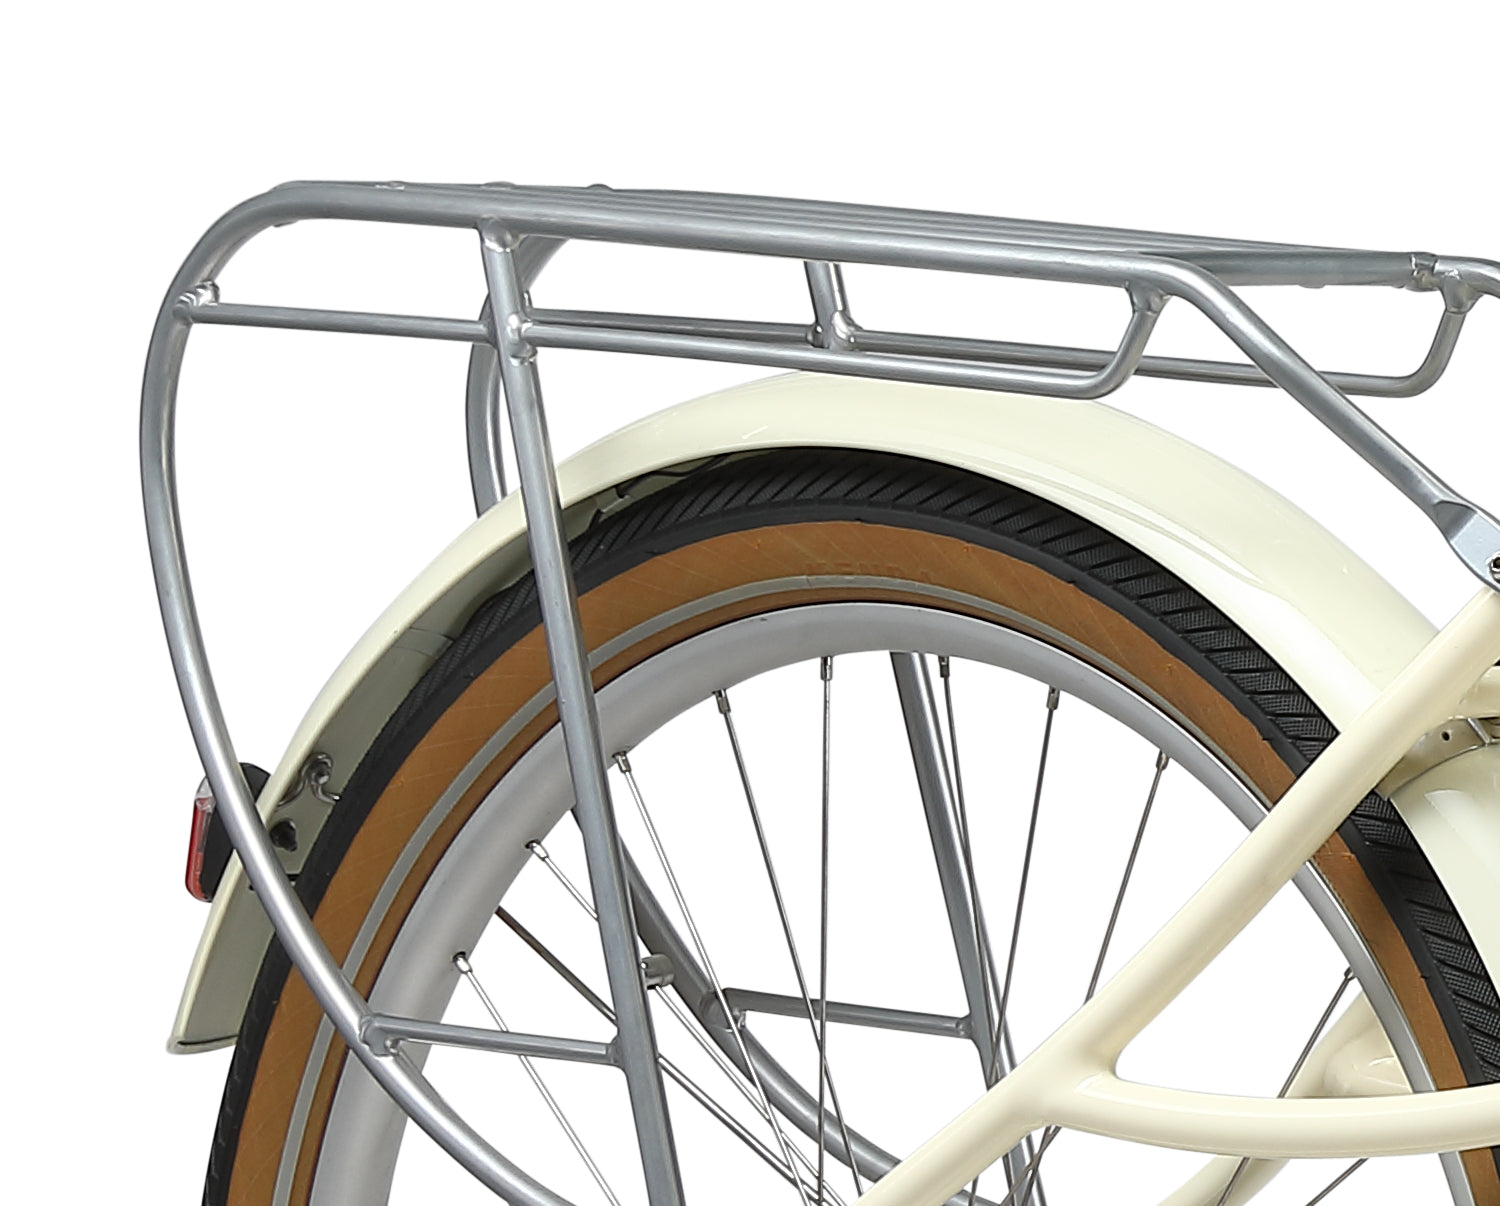 In The Details - Rear Rack